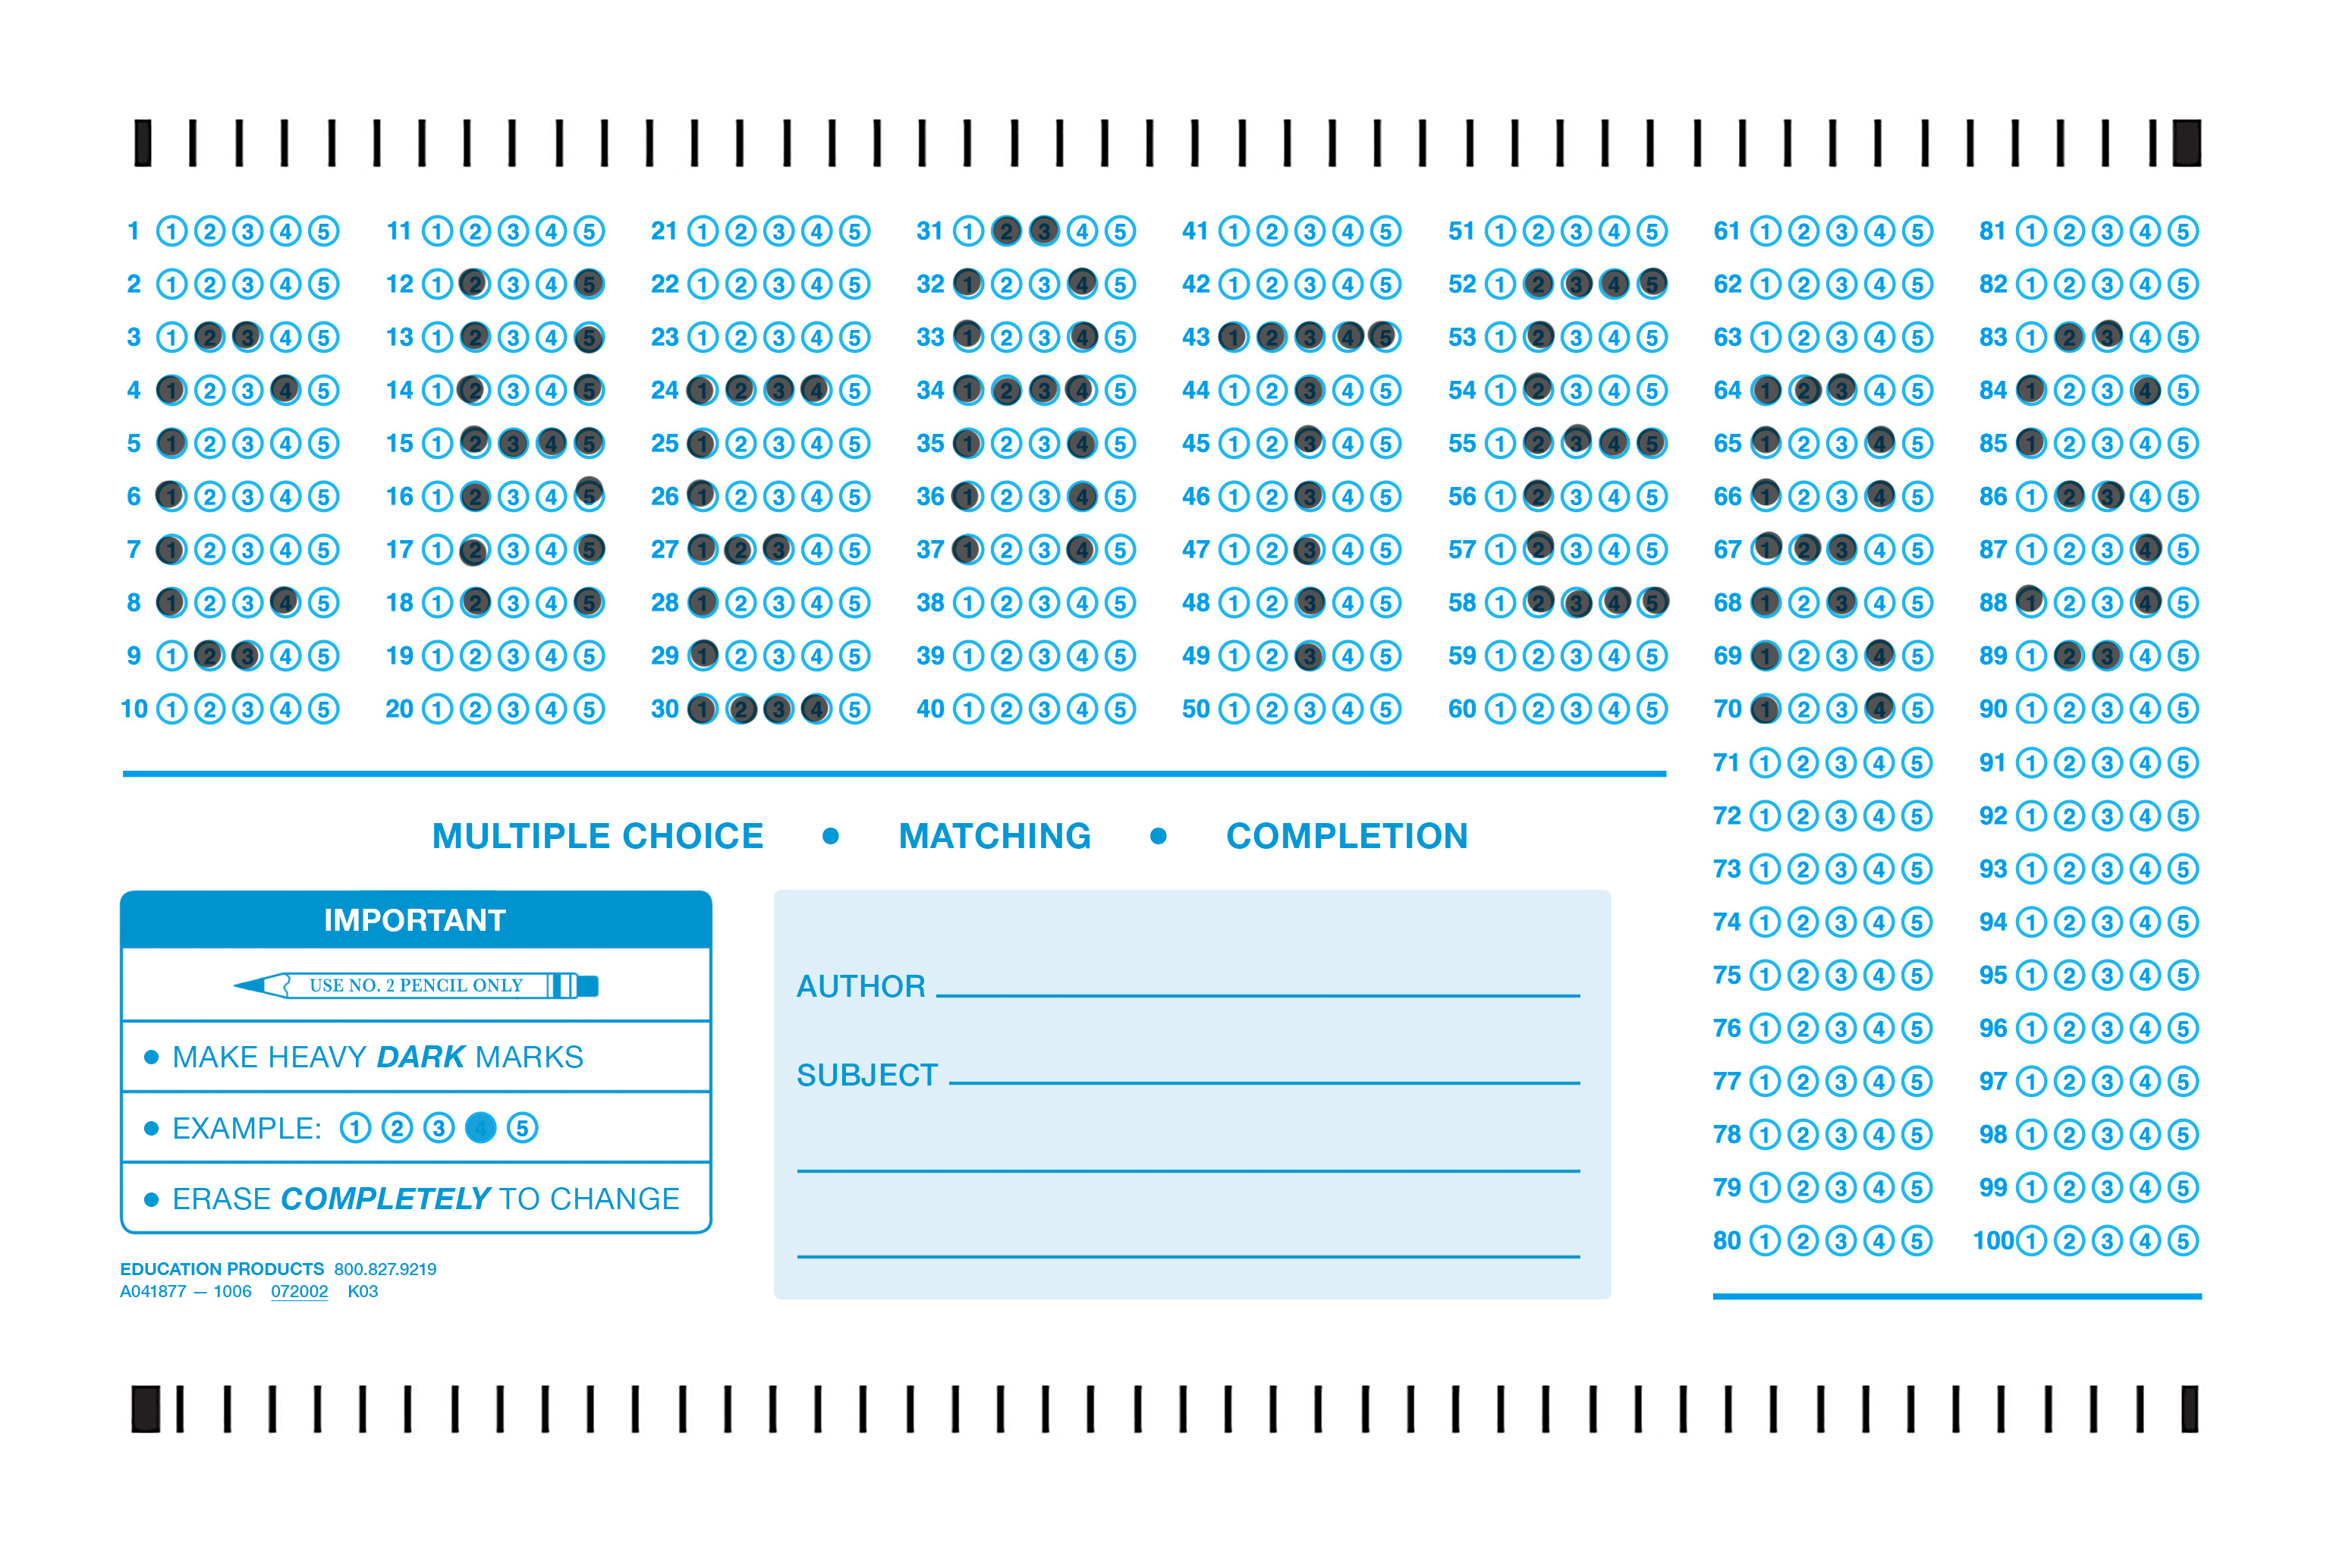 cheaters-scantron--Version-2-2.png